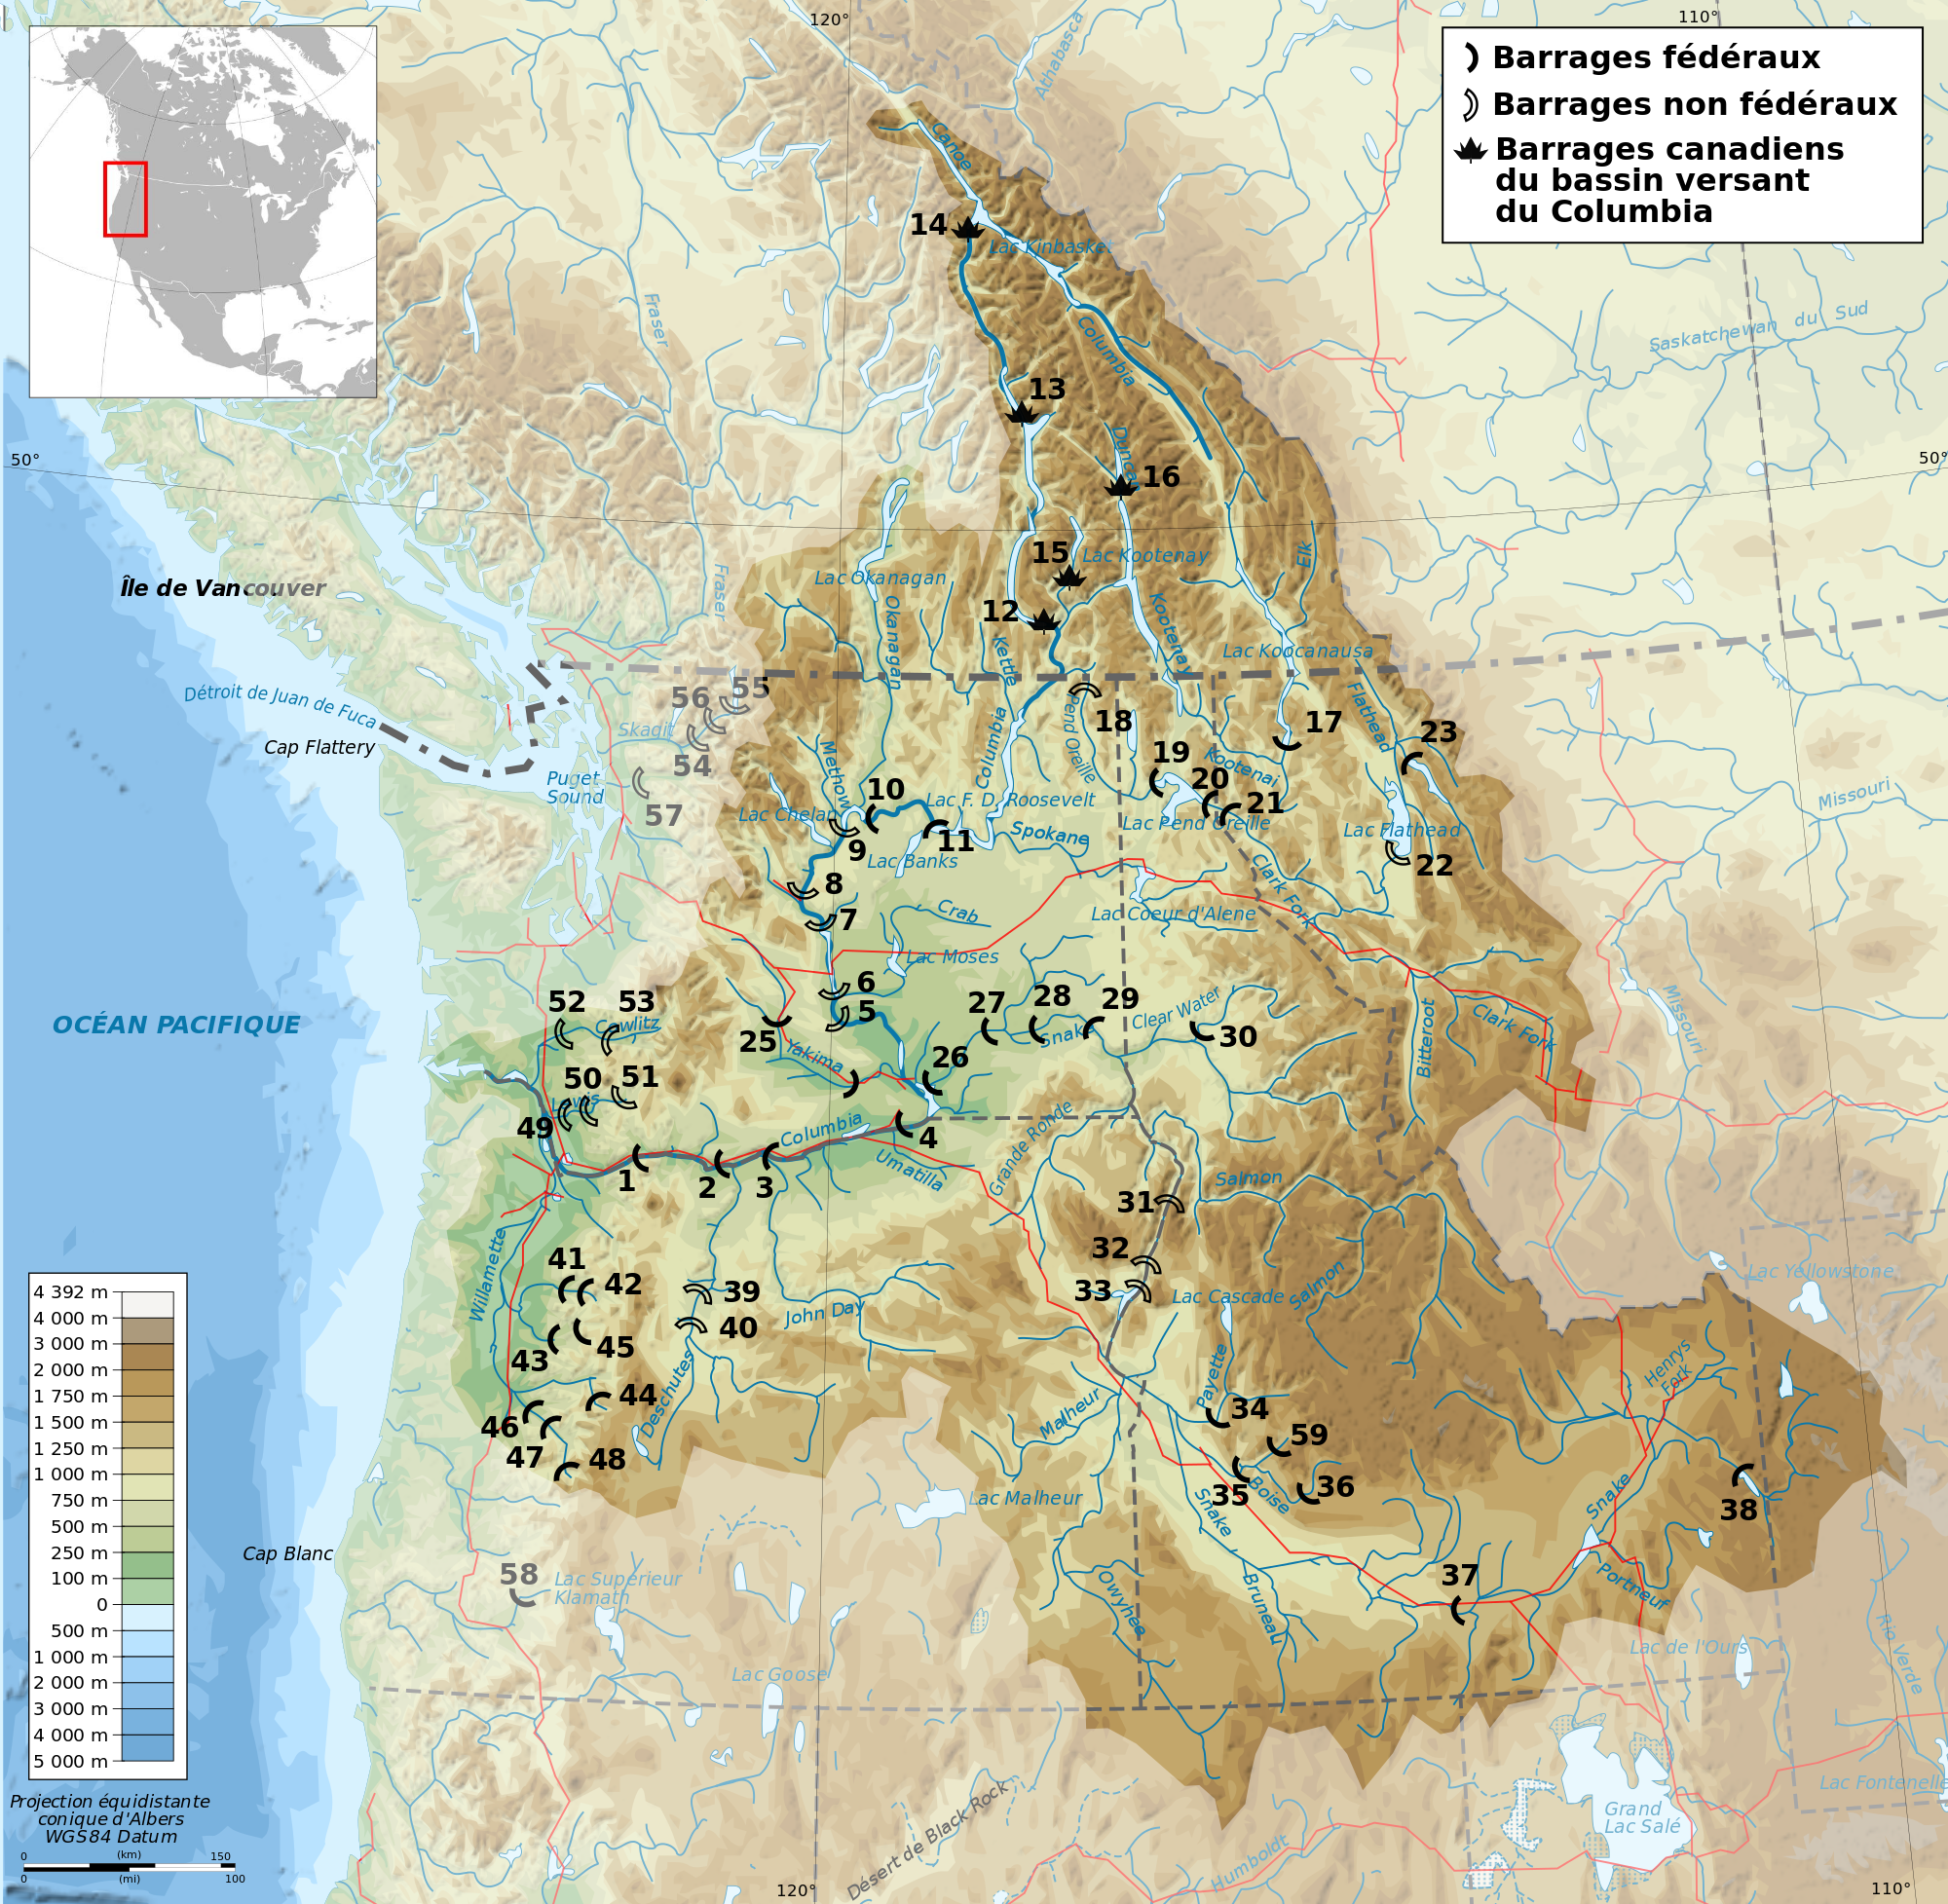 columbia river basin essay The columbia river basalt group: the columbia basin of eastern washington is plastered with deep layers of a fine grained black rock known as basalt.